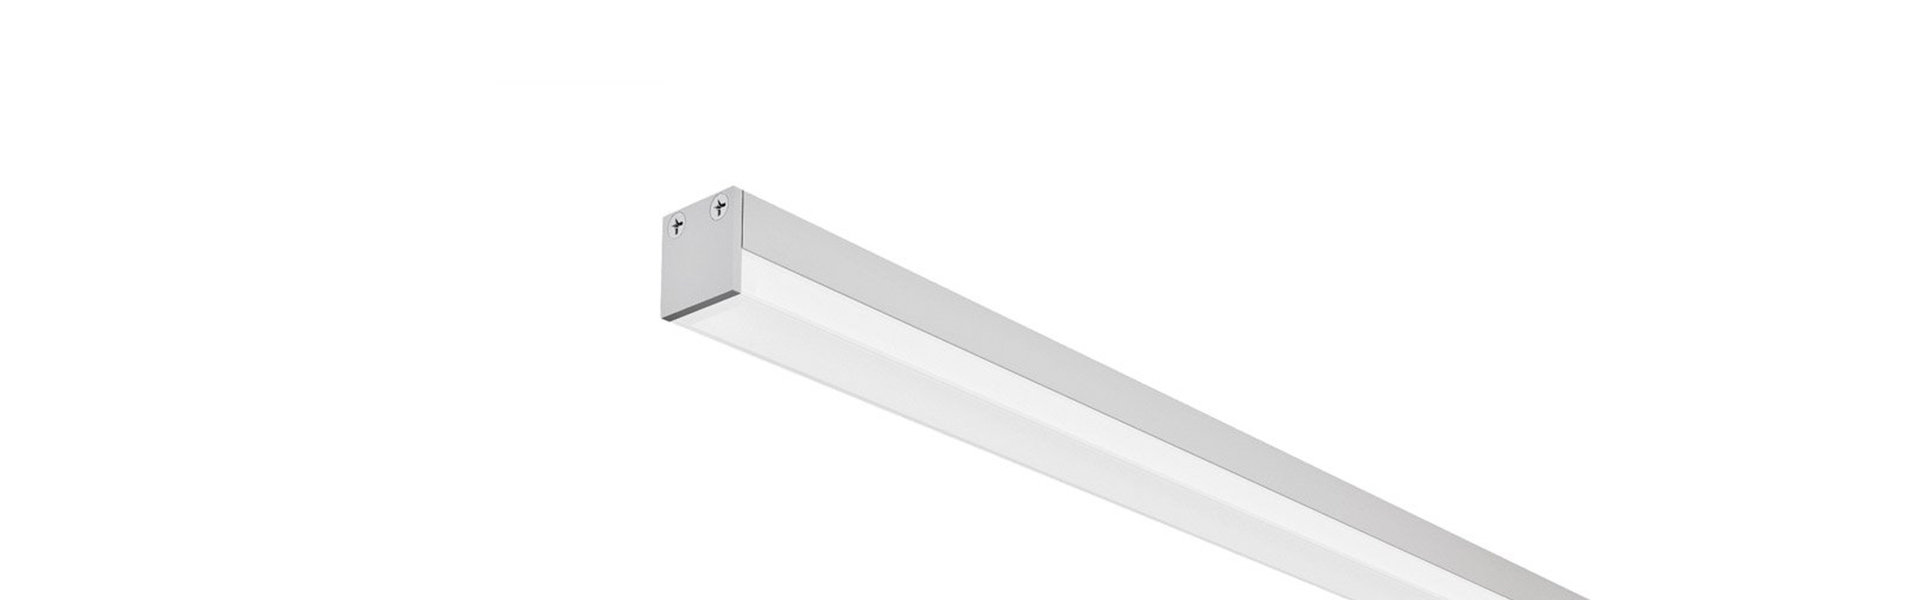 led linear kitchen light